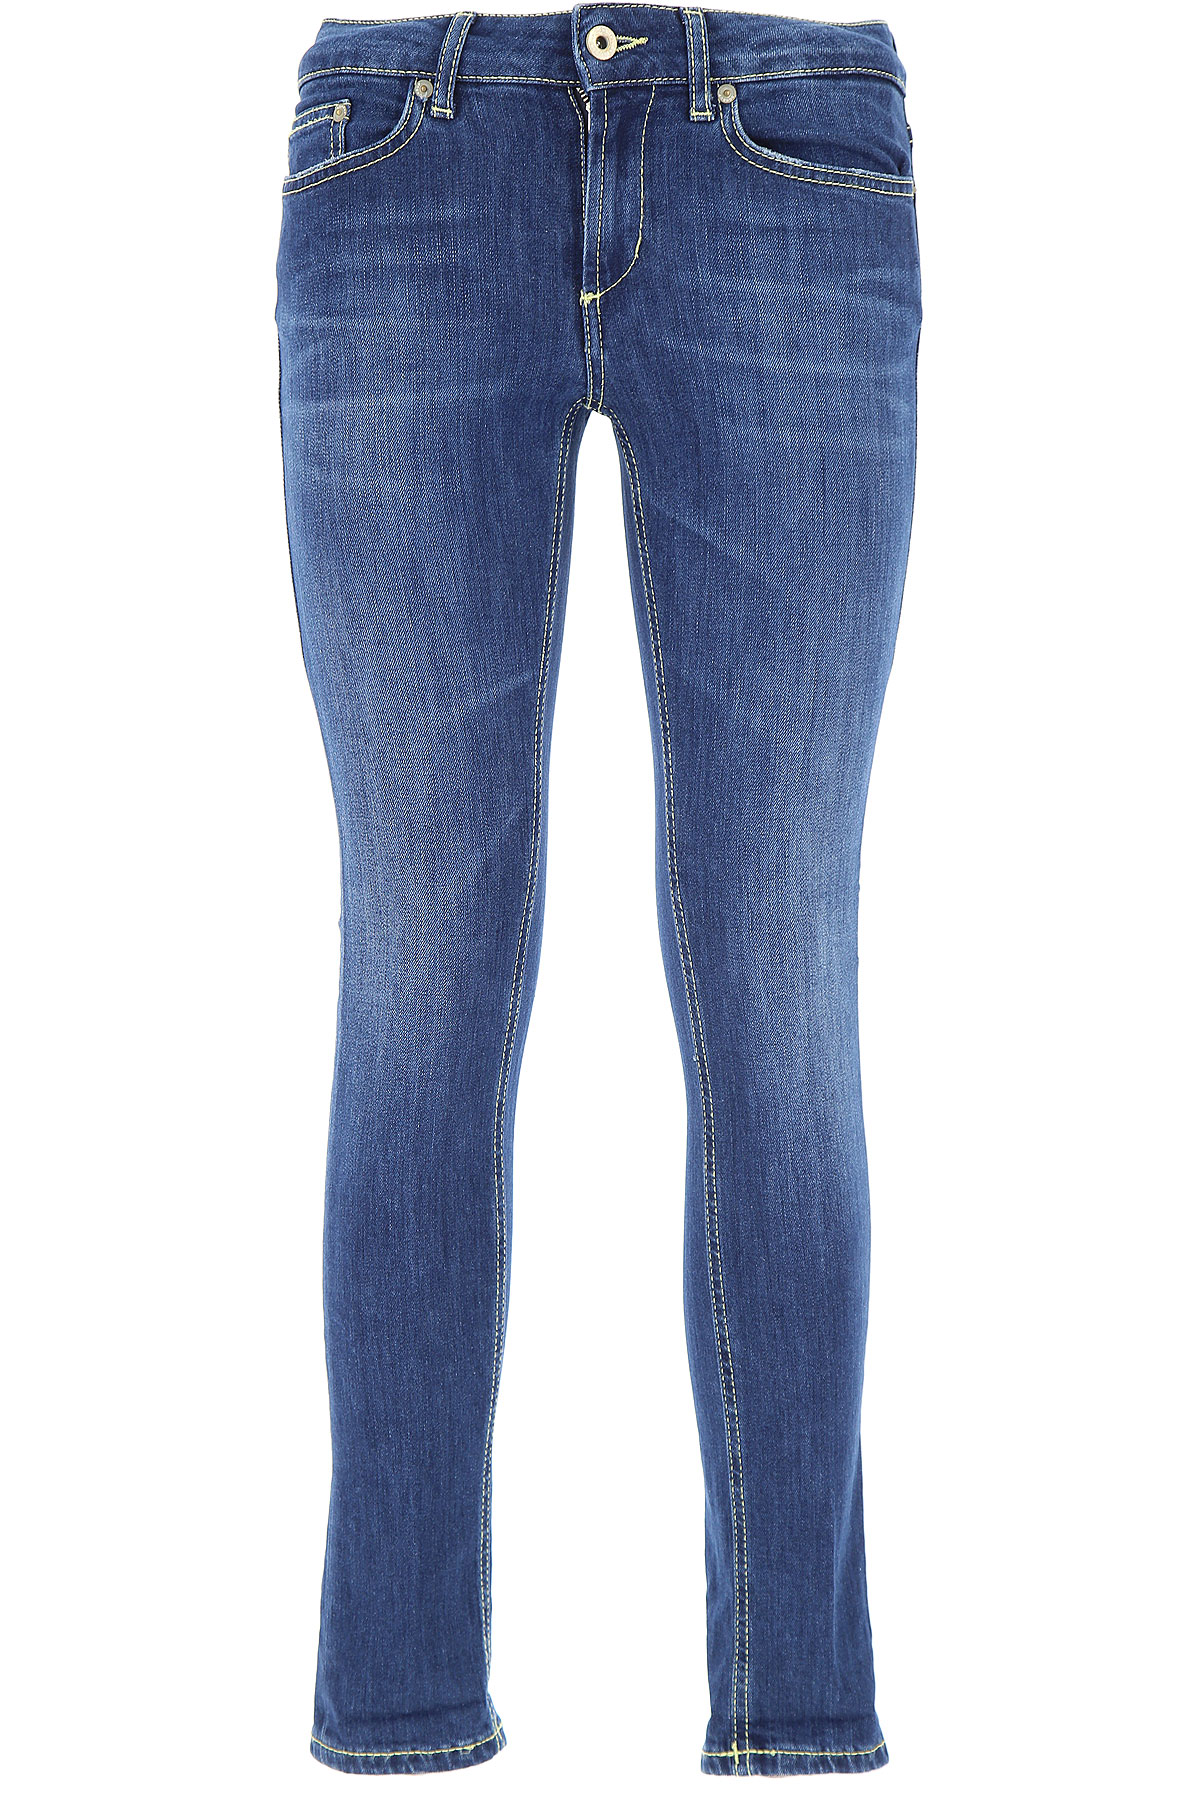 Dondup Jeans On Sale, Denim Blue, Cotton, 2017, 25 26 29 31